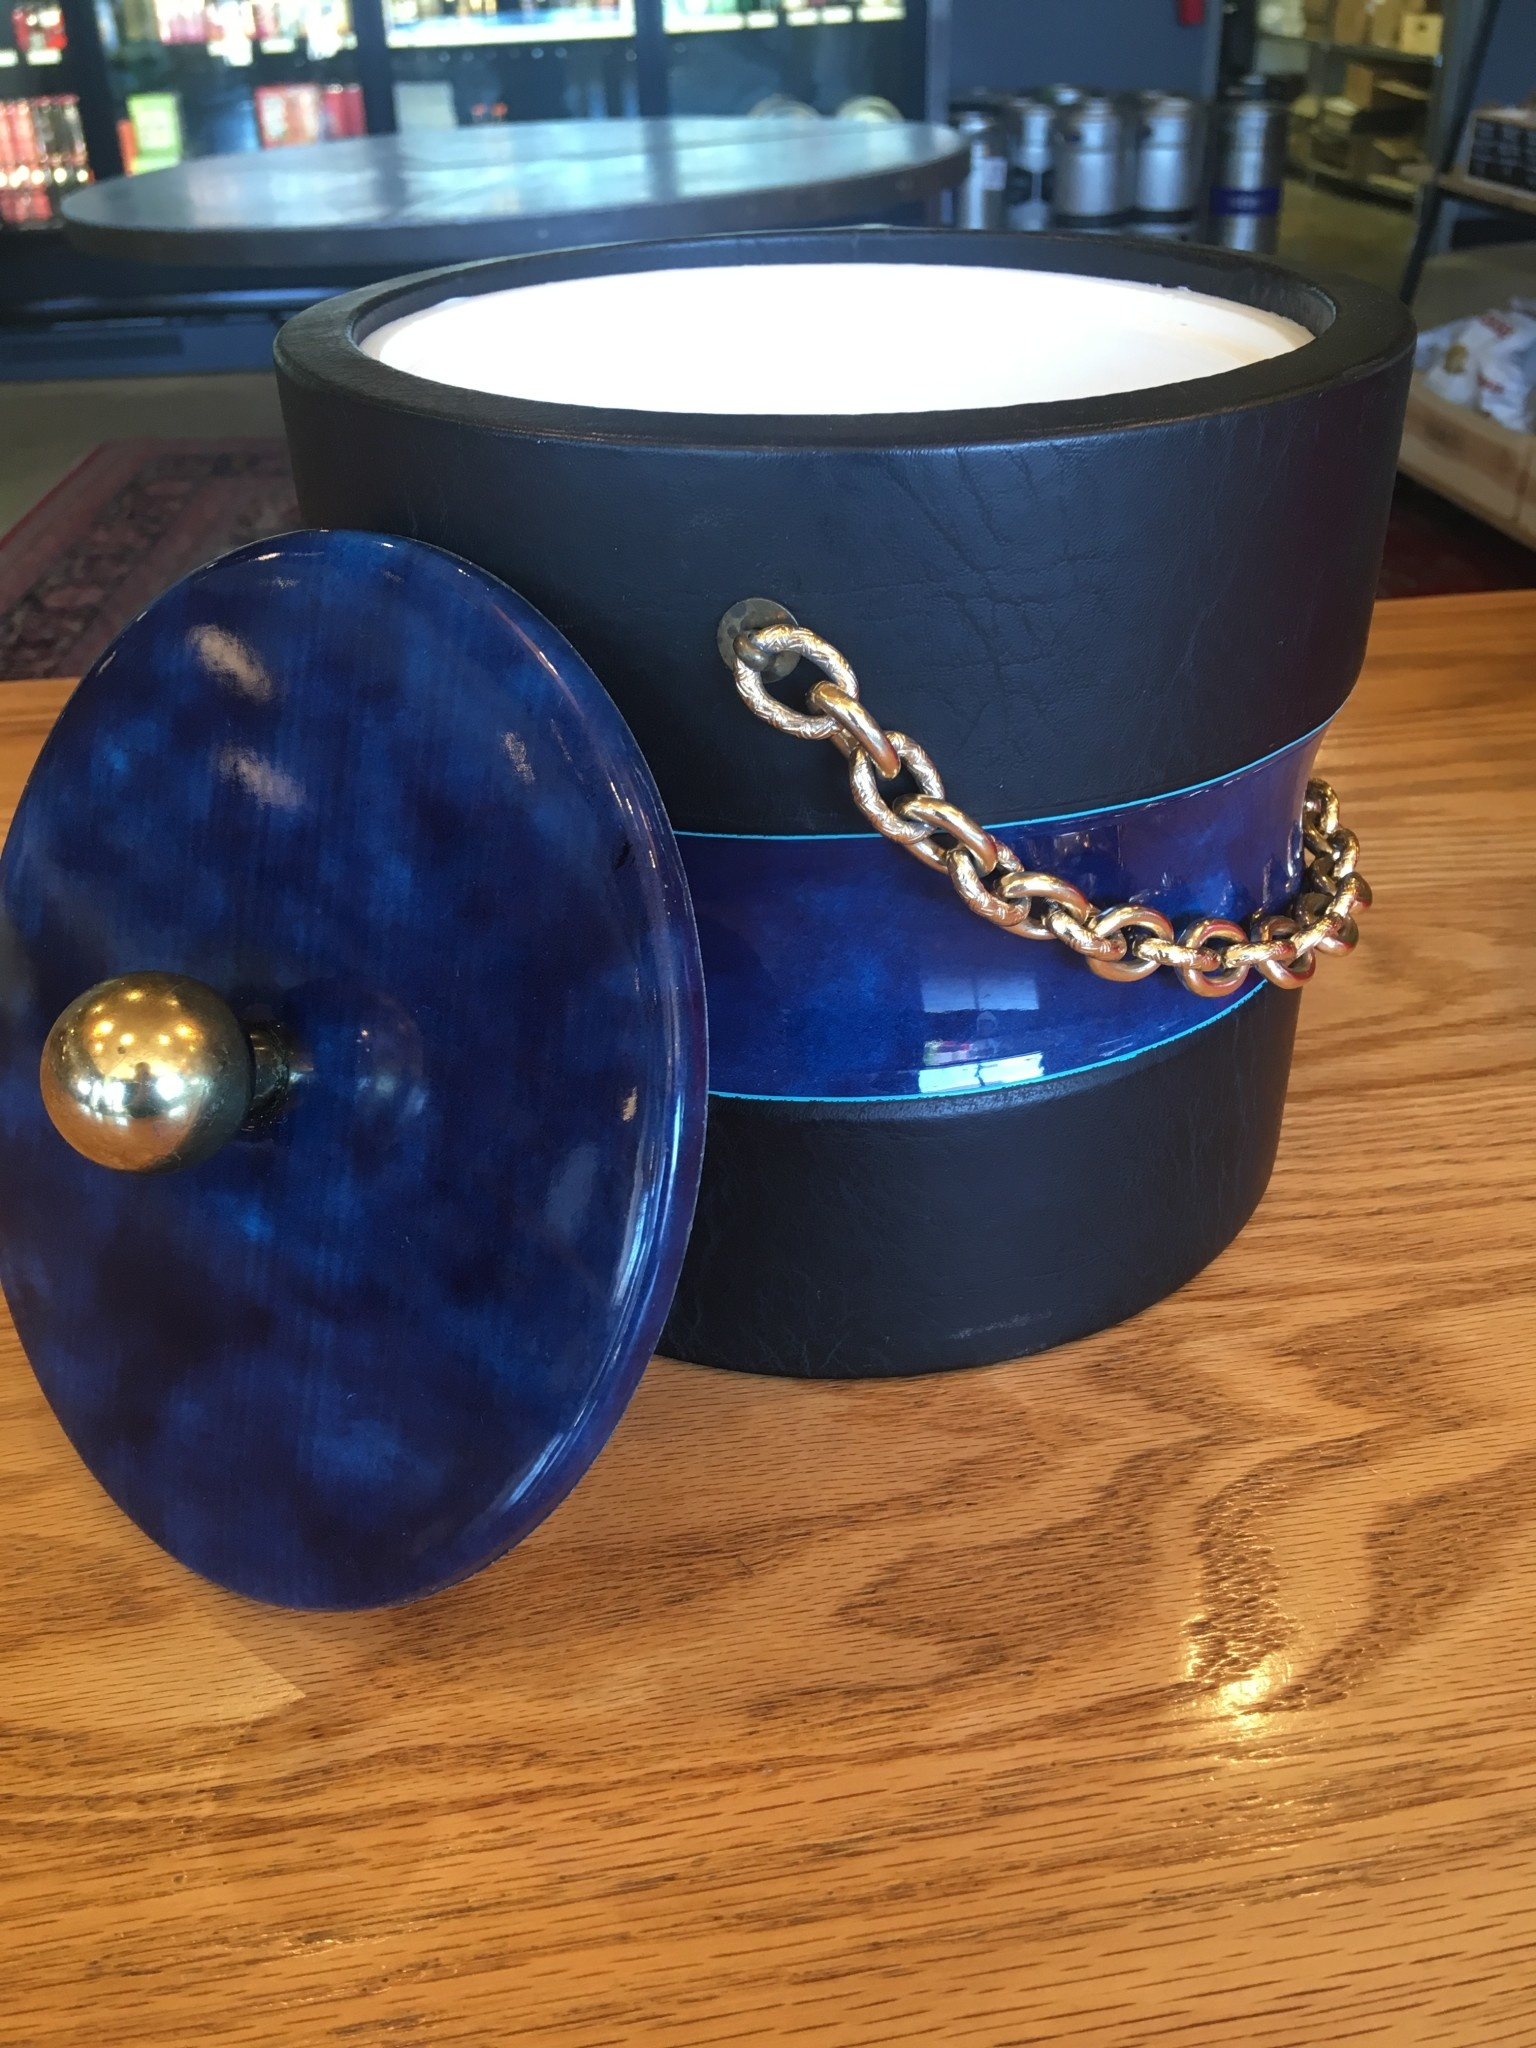 Georges Briard Vintage Georges Briard Ice Bucket Black and Navy with Gold Chain